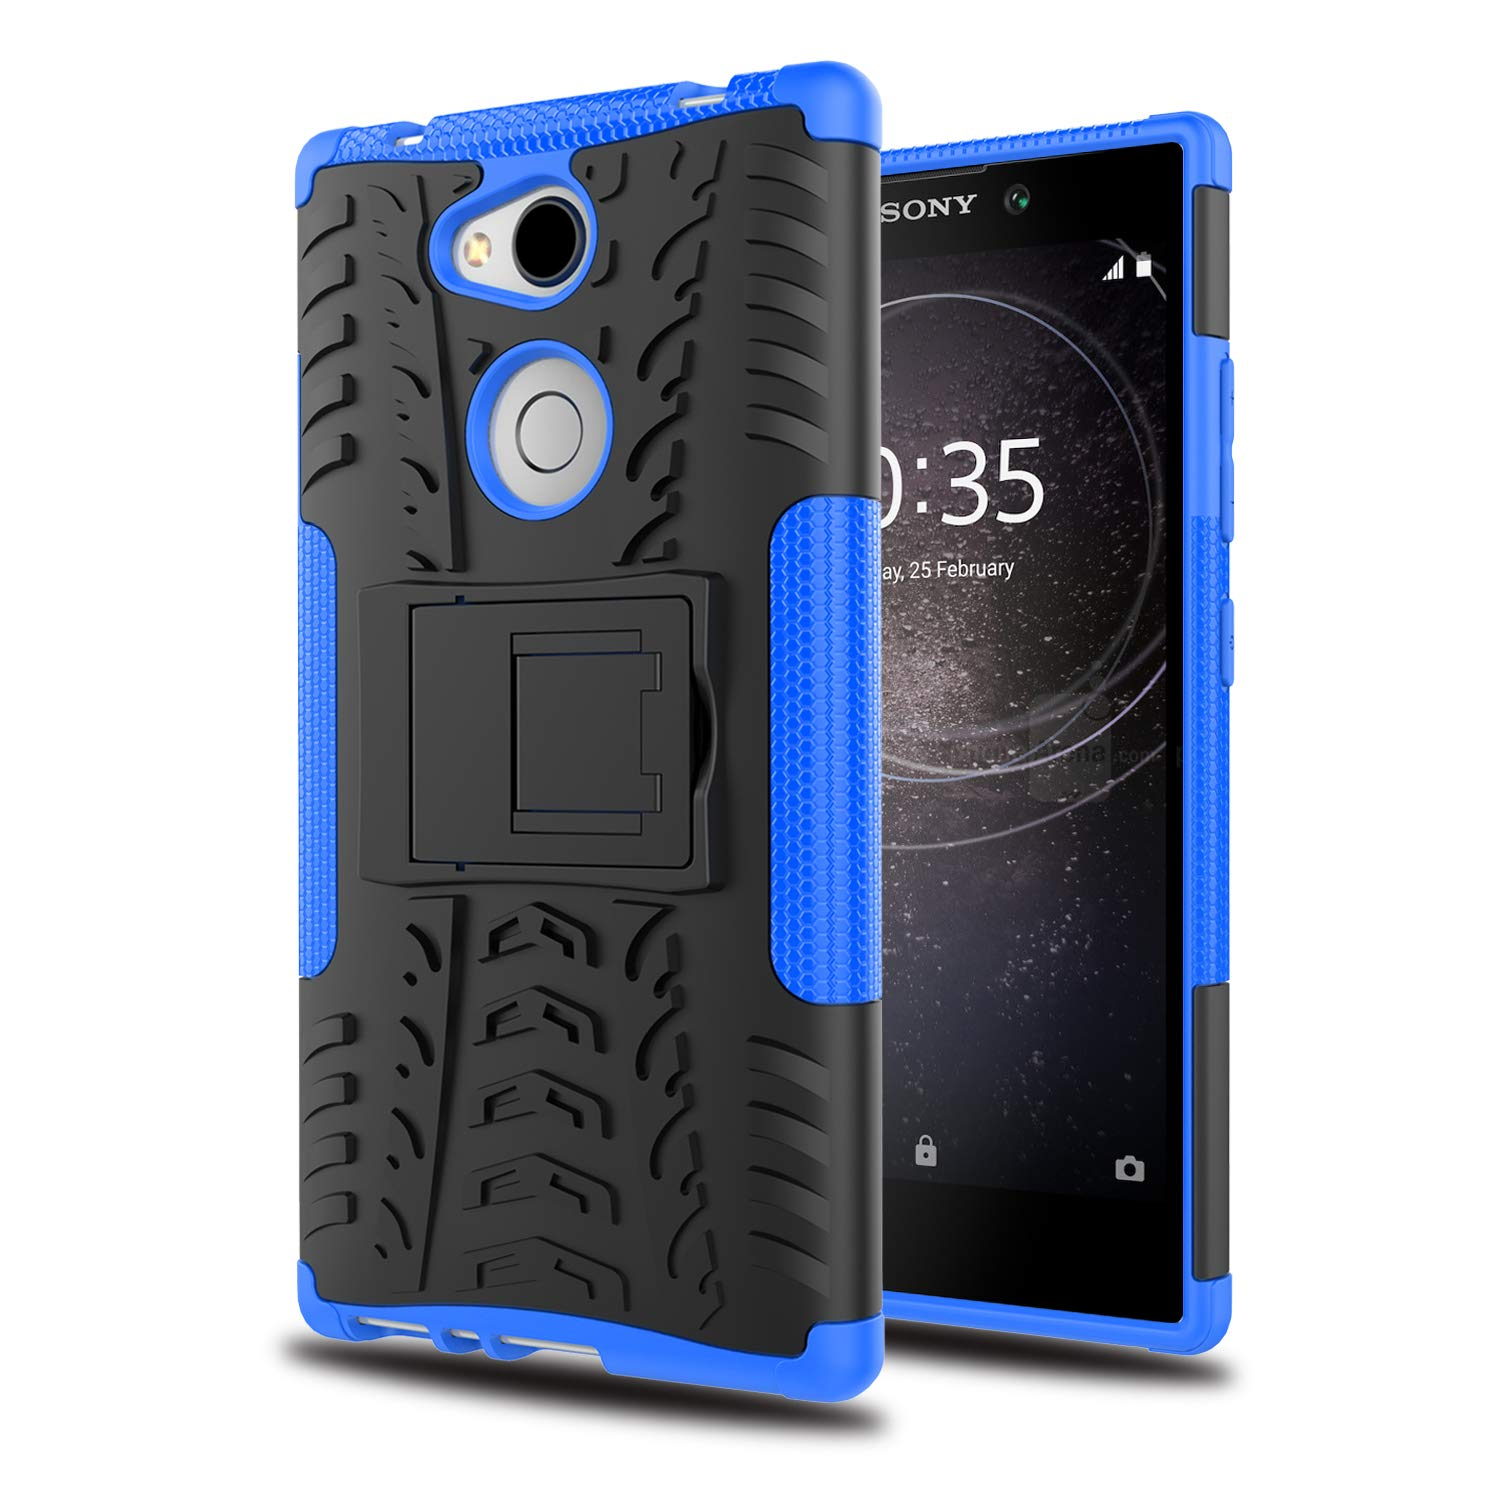 YmhxcY Xperia L2 Phone Case with HD Screen Protector,Military Armor Drop Tested [Heavy Duty] Hybrid Case with Kickstand for Sony Xperia L2 5.5 Inch ...